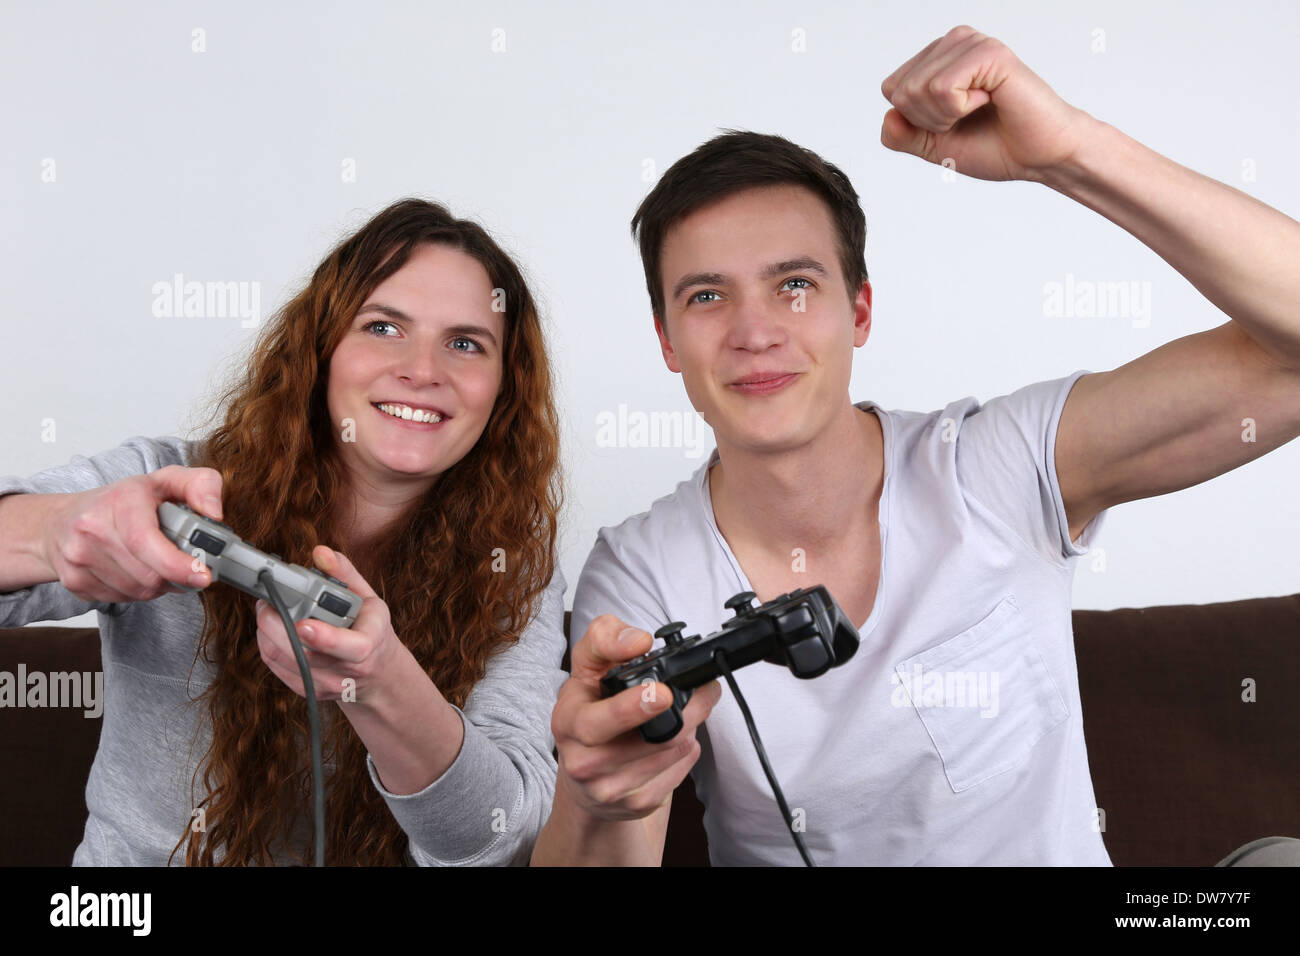 Two young people having fun while playing video games Stock Photo